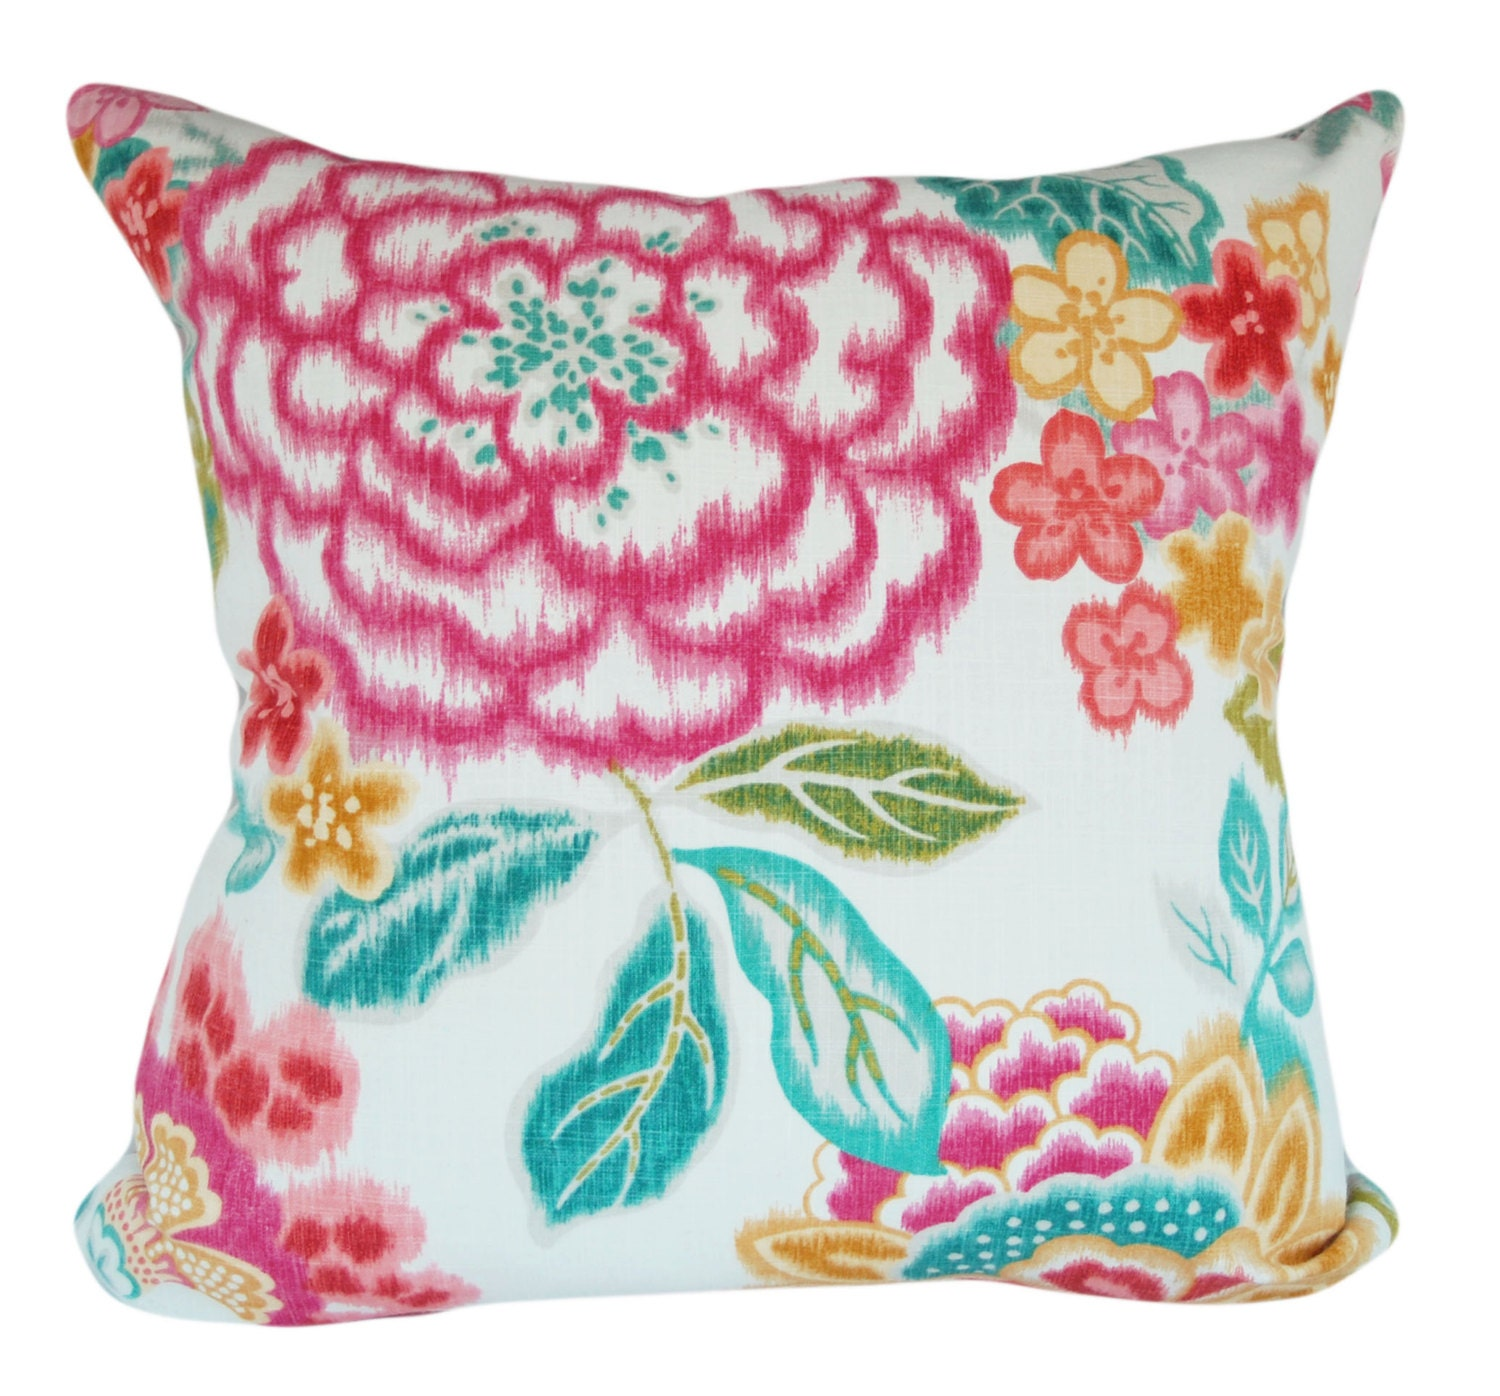 Kaufmann Ikat Floral Throw Pillow Cover Decorative Pillow